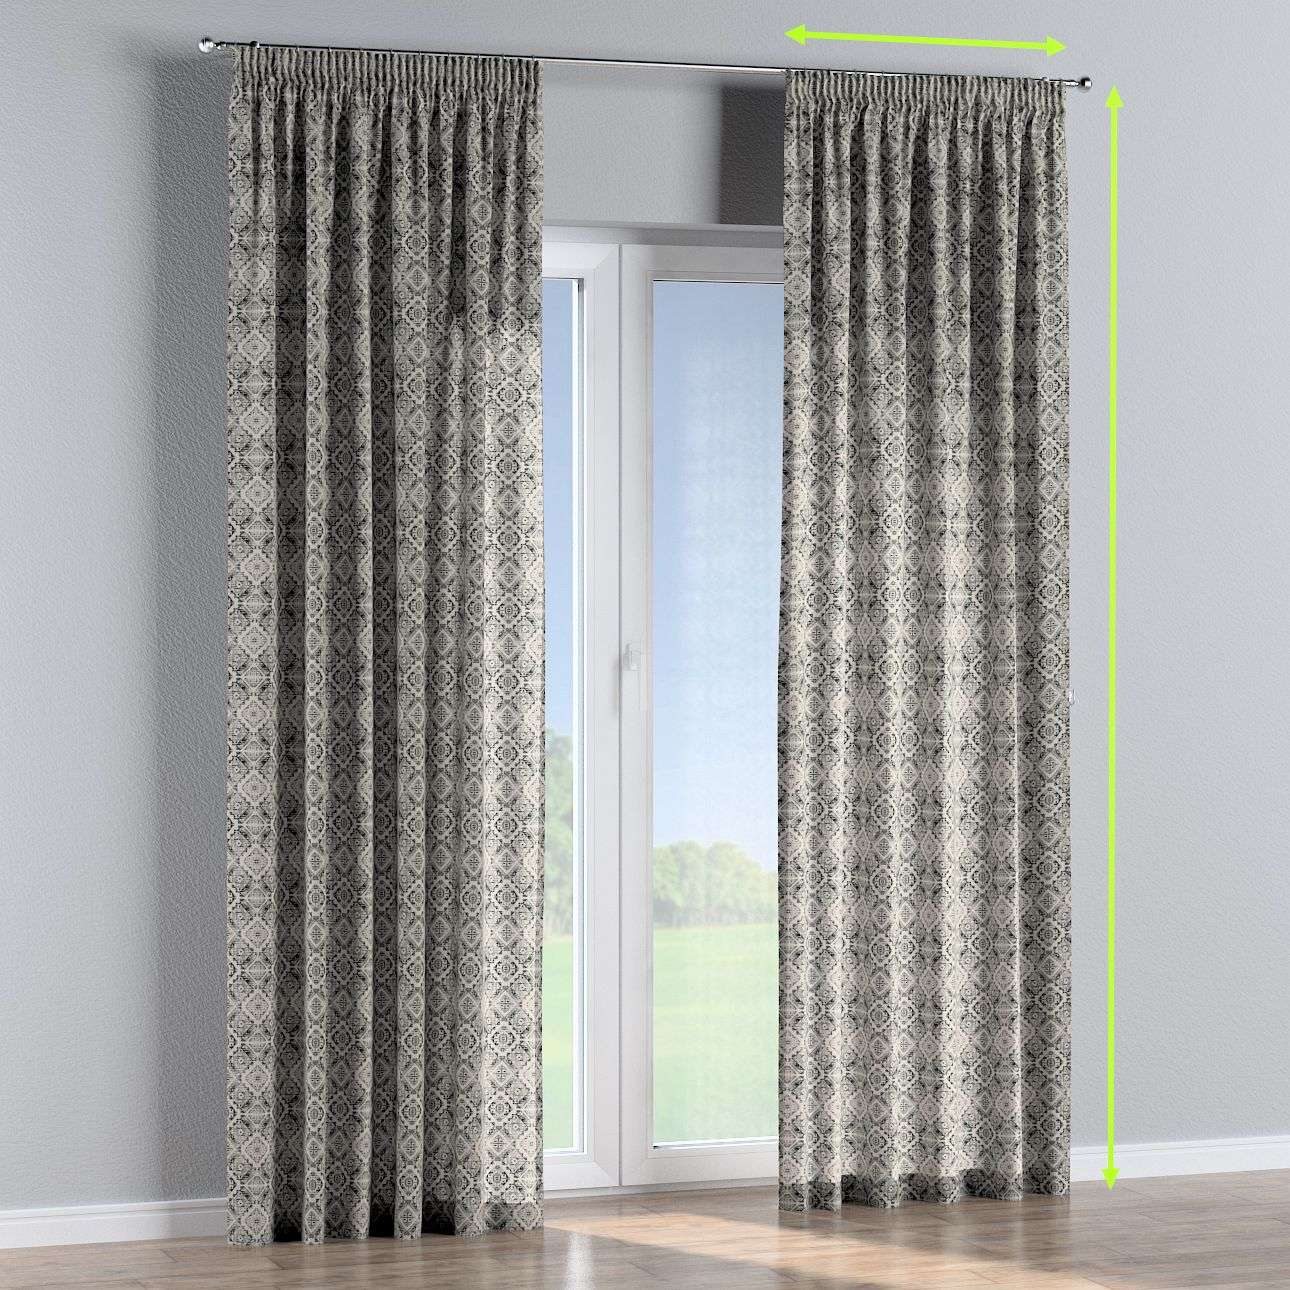 Pencil pleat curtains in collection Comics/Geometrical, fabric: 141-18